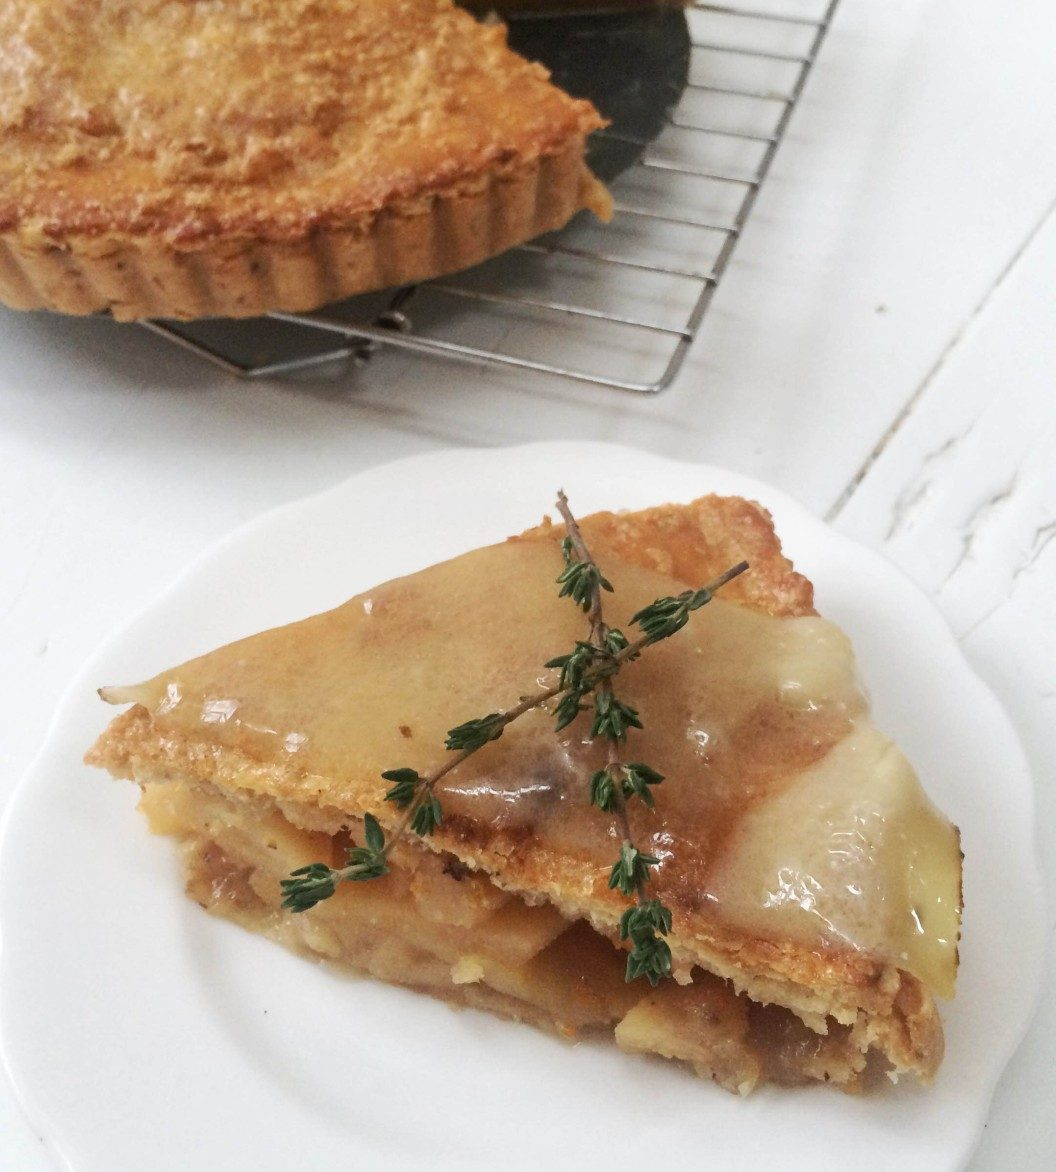 Quince Apple Pie with Star Anise, topped with a slice of melted 24 month aged Comté cheese